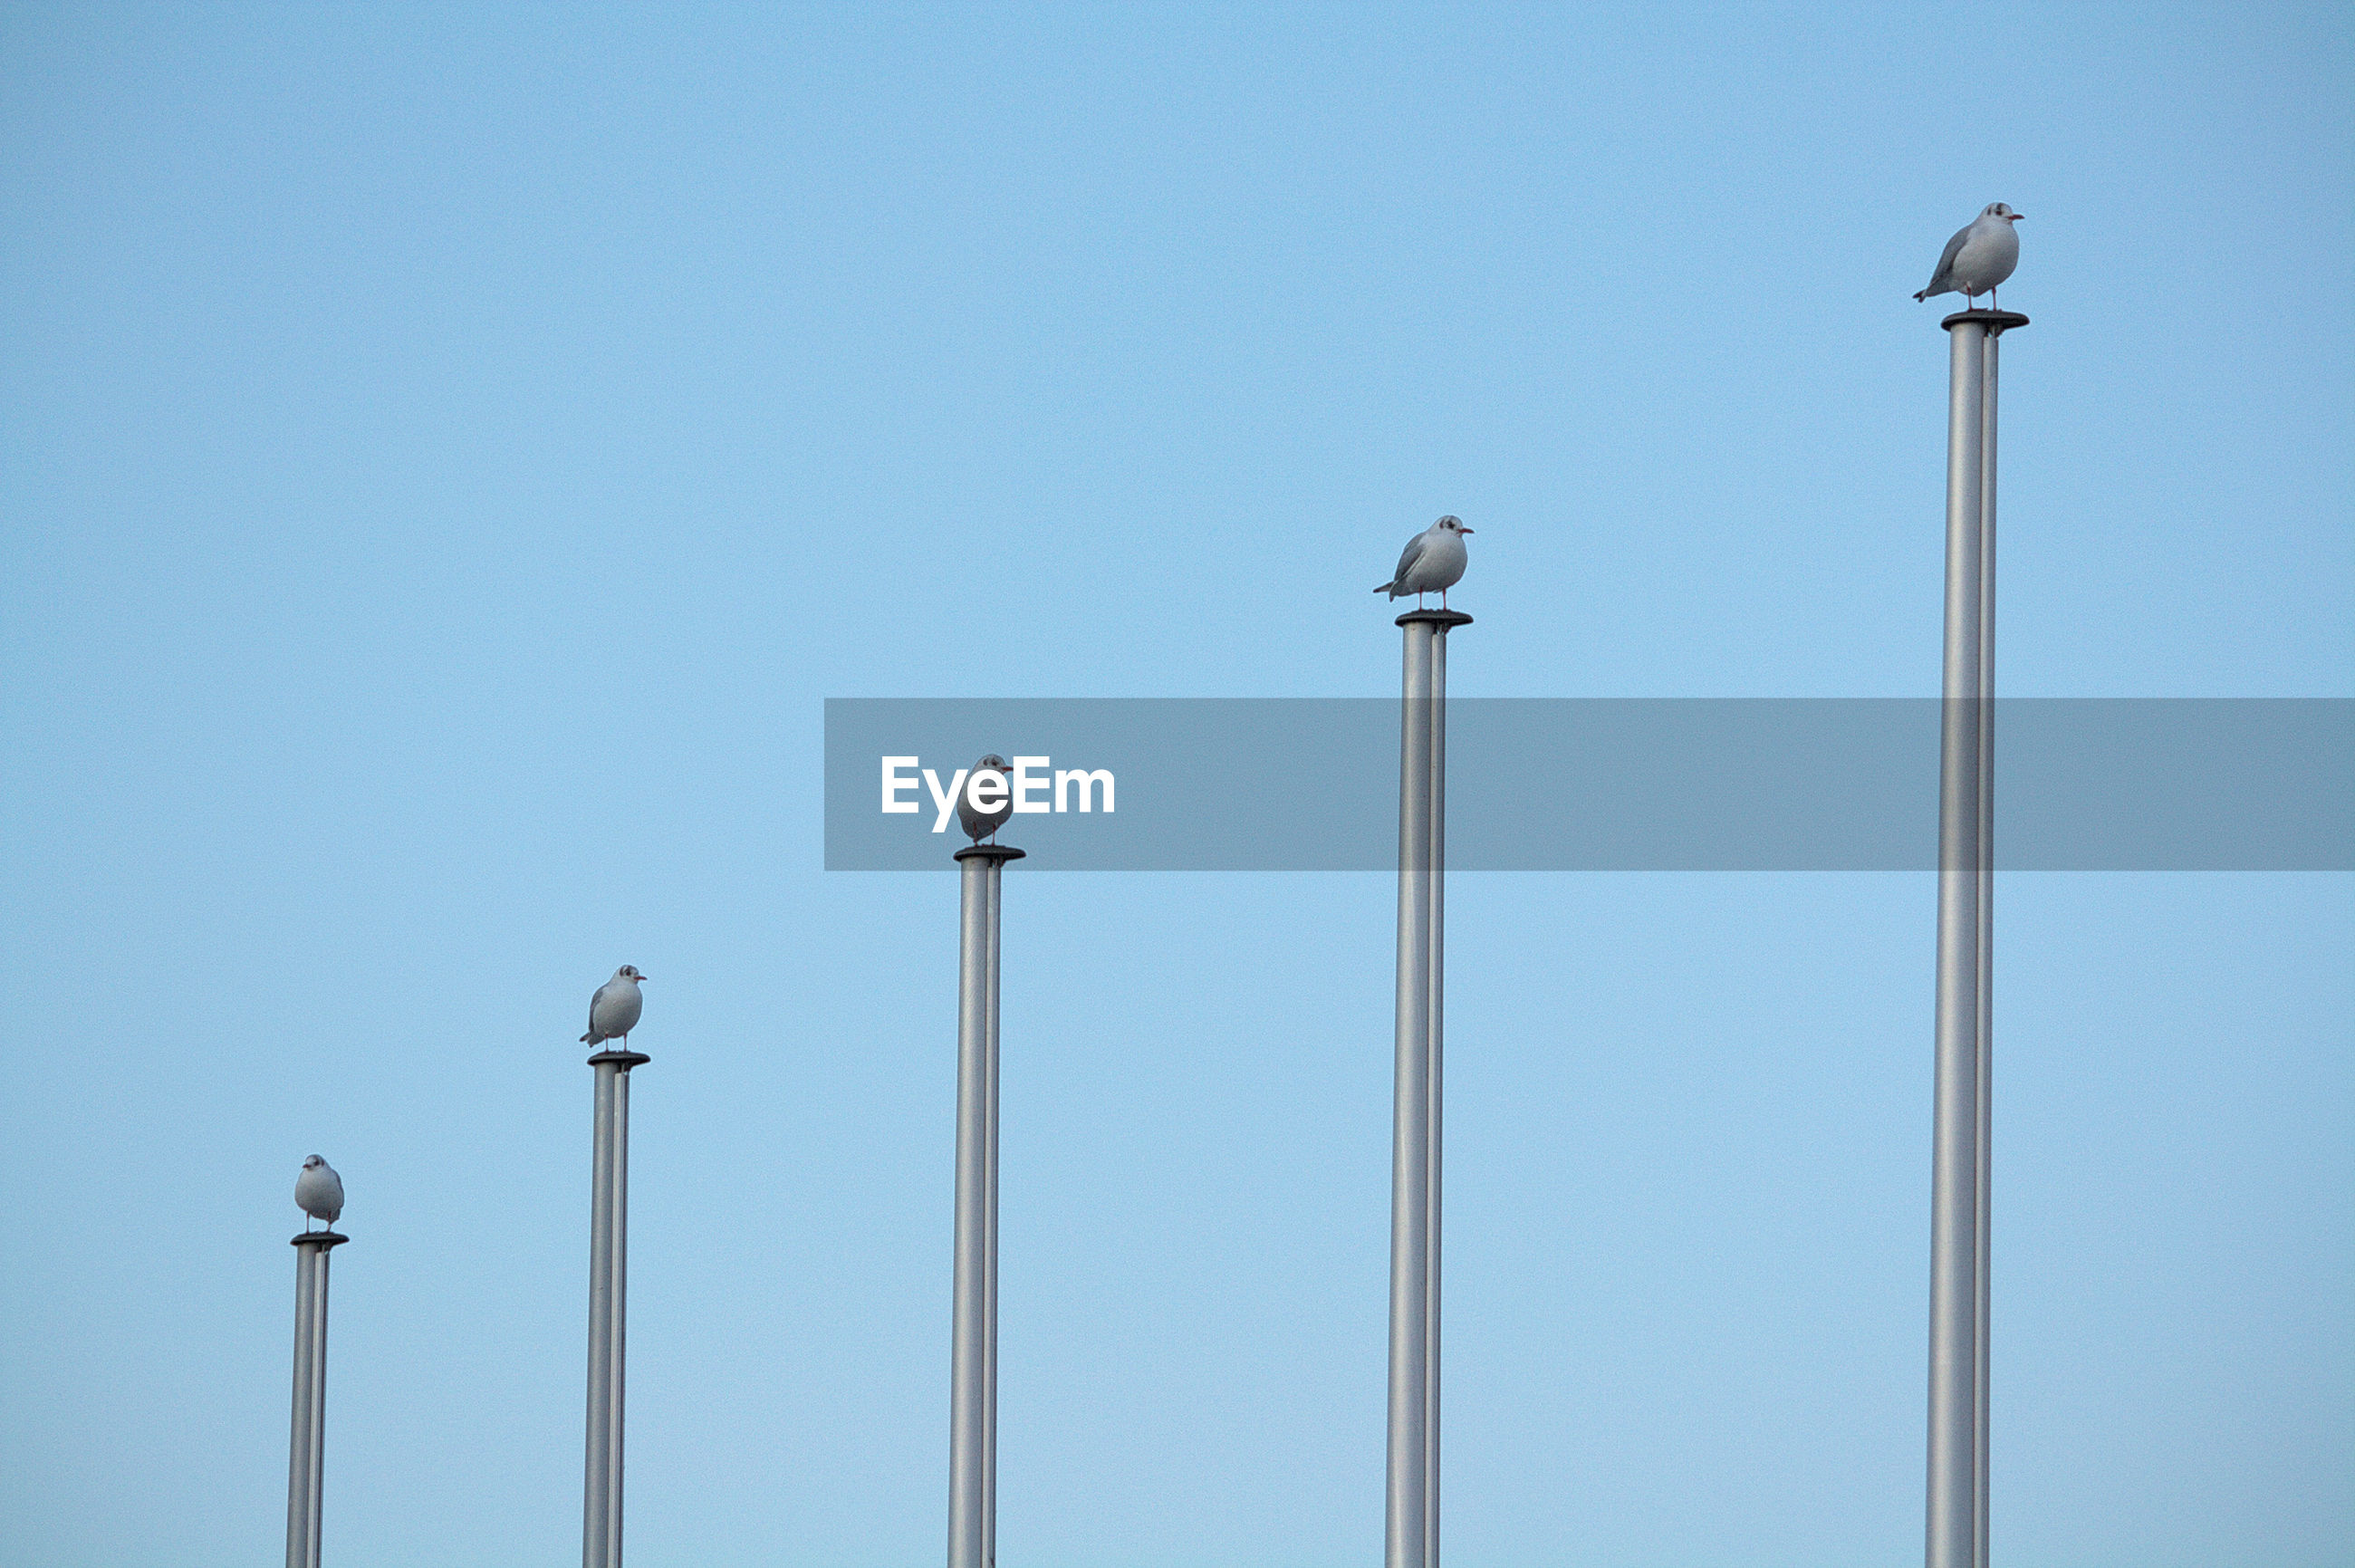 Low angle view of birds perching on pole against blue sky